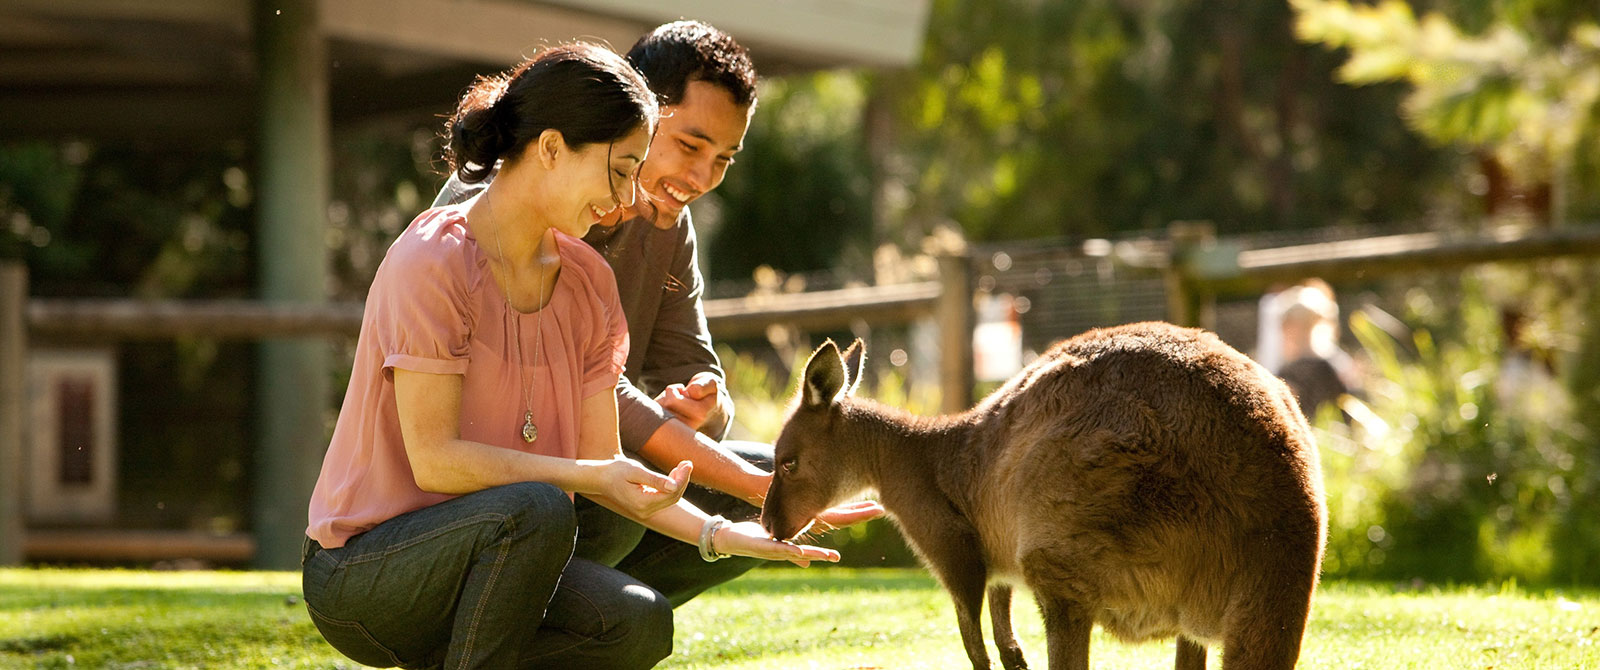 Feeding Kangaroos at Healesville Sanctuary - Best Australia Wildlife Vacations